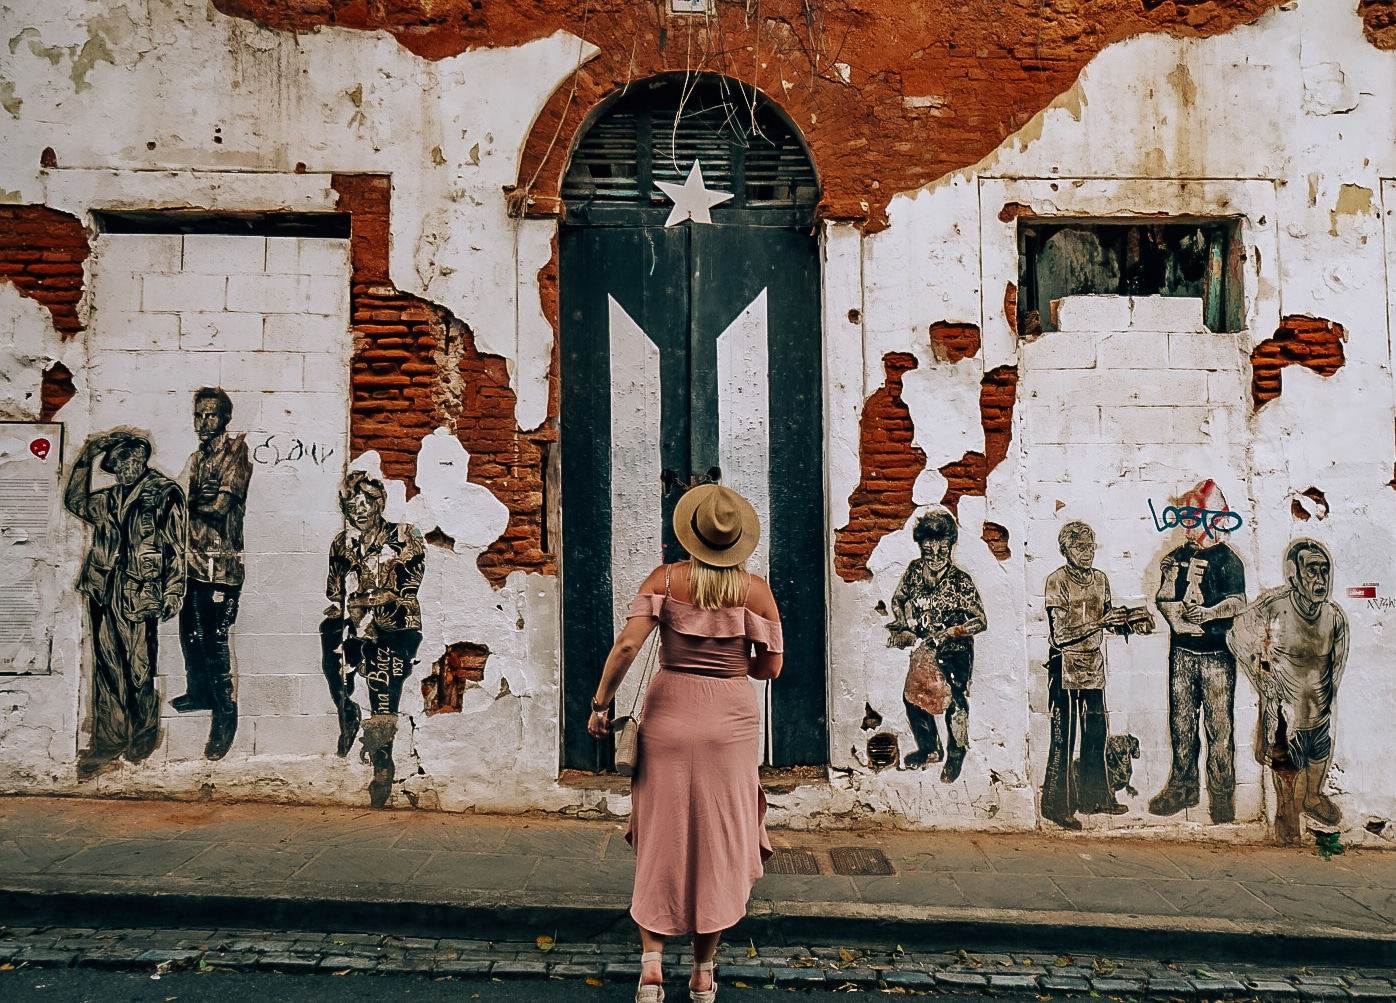 Woman standing in front of the Puerto Rican flag monument in Old San Juan